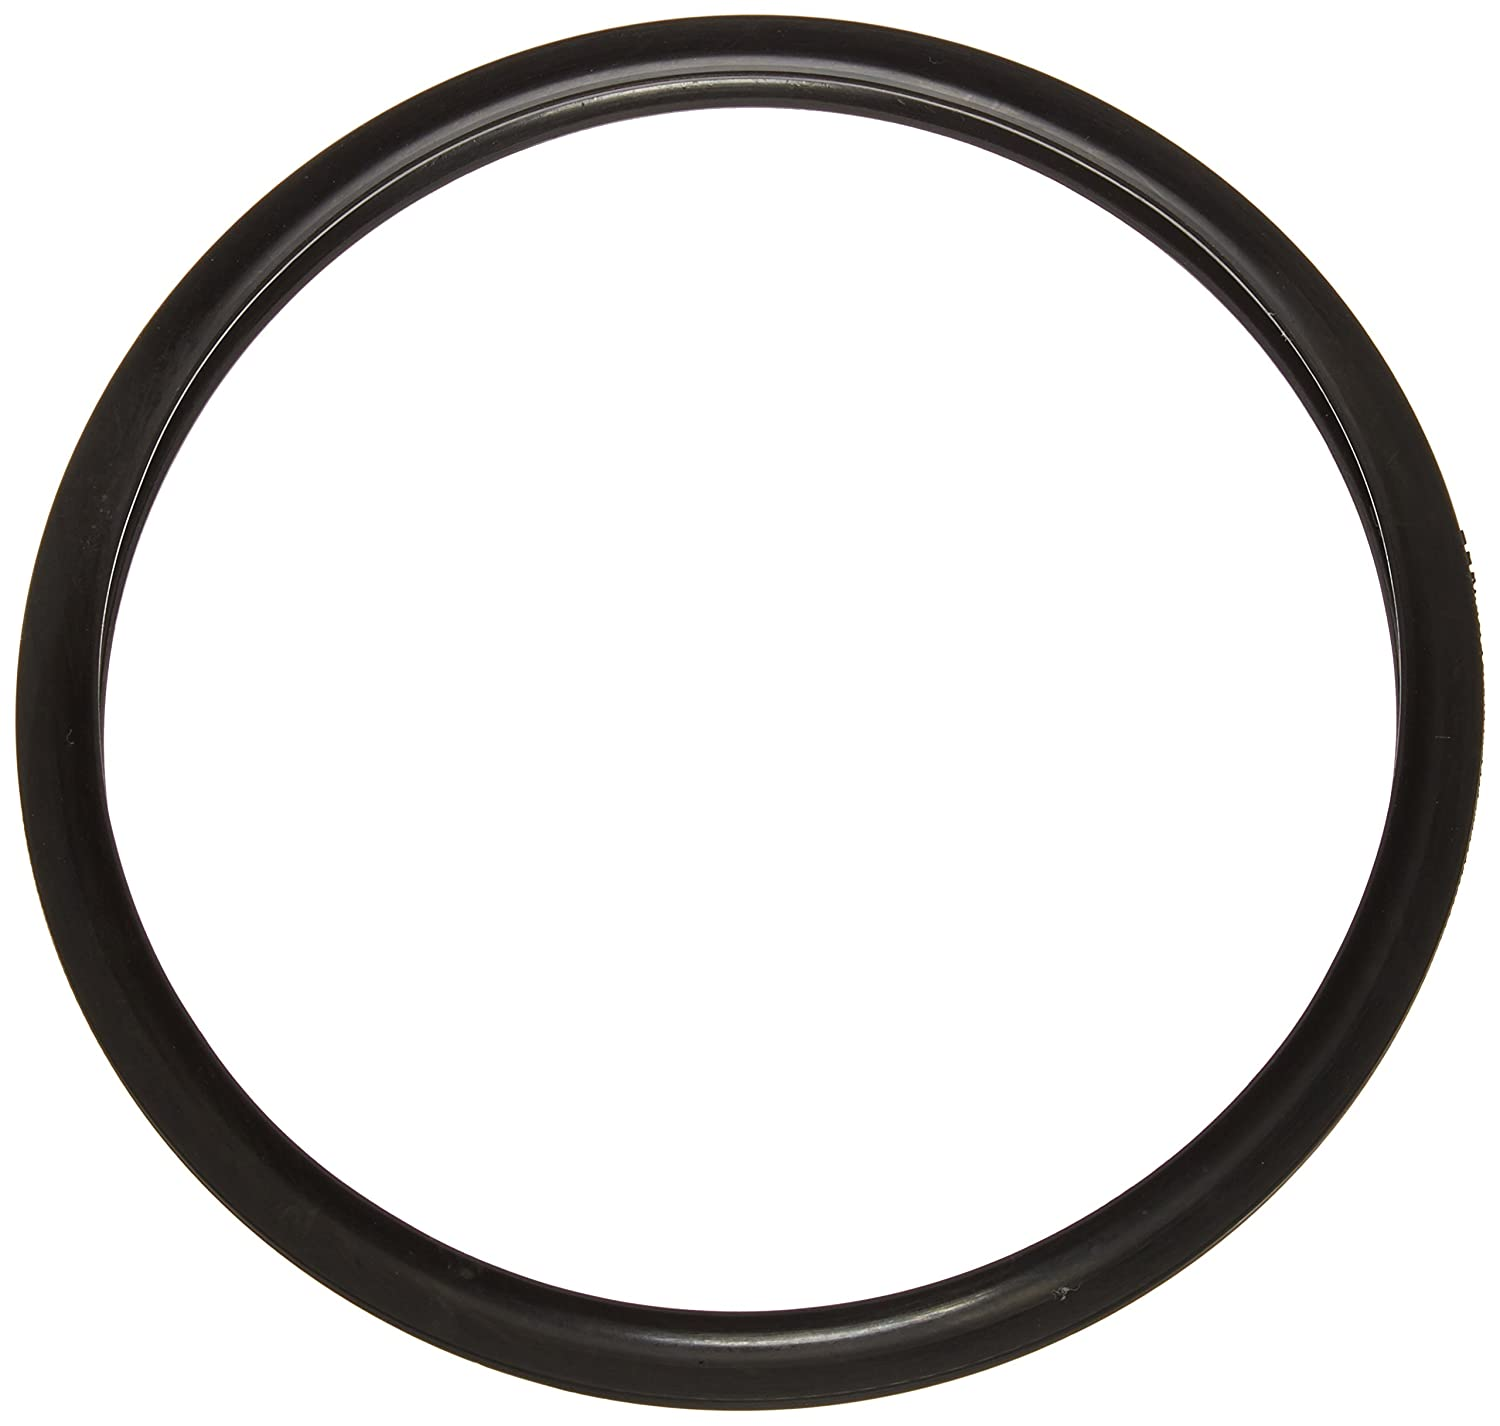 Prestige Junior Sealing Ring Gasket for Popular & Popular Plus Aluminum 4/5/6-Liter Pressure Cookers